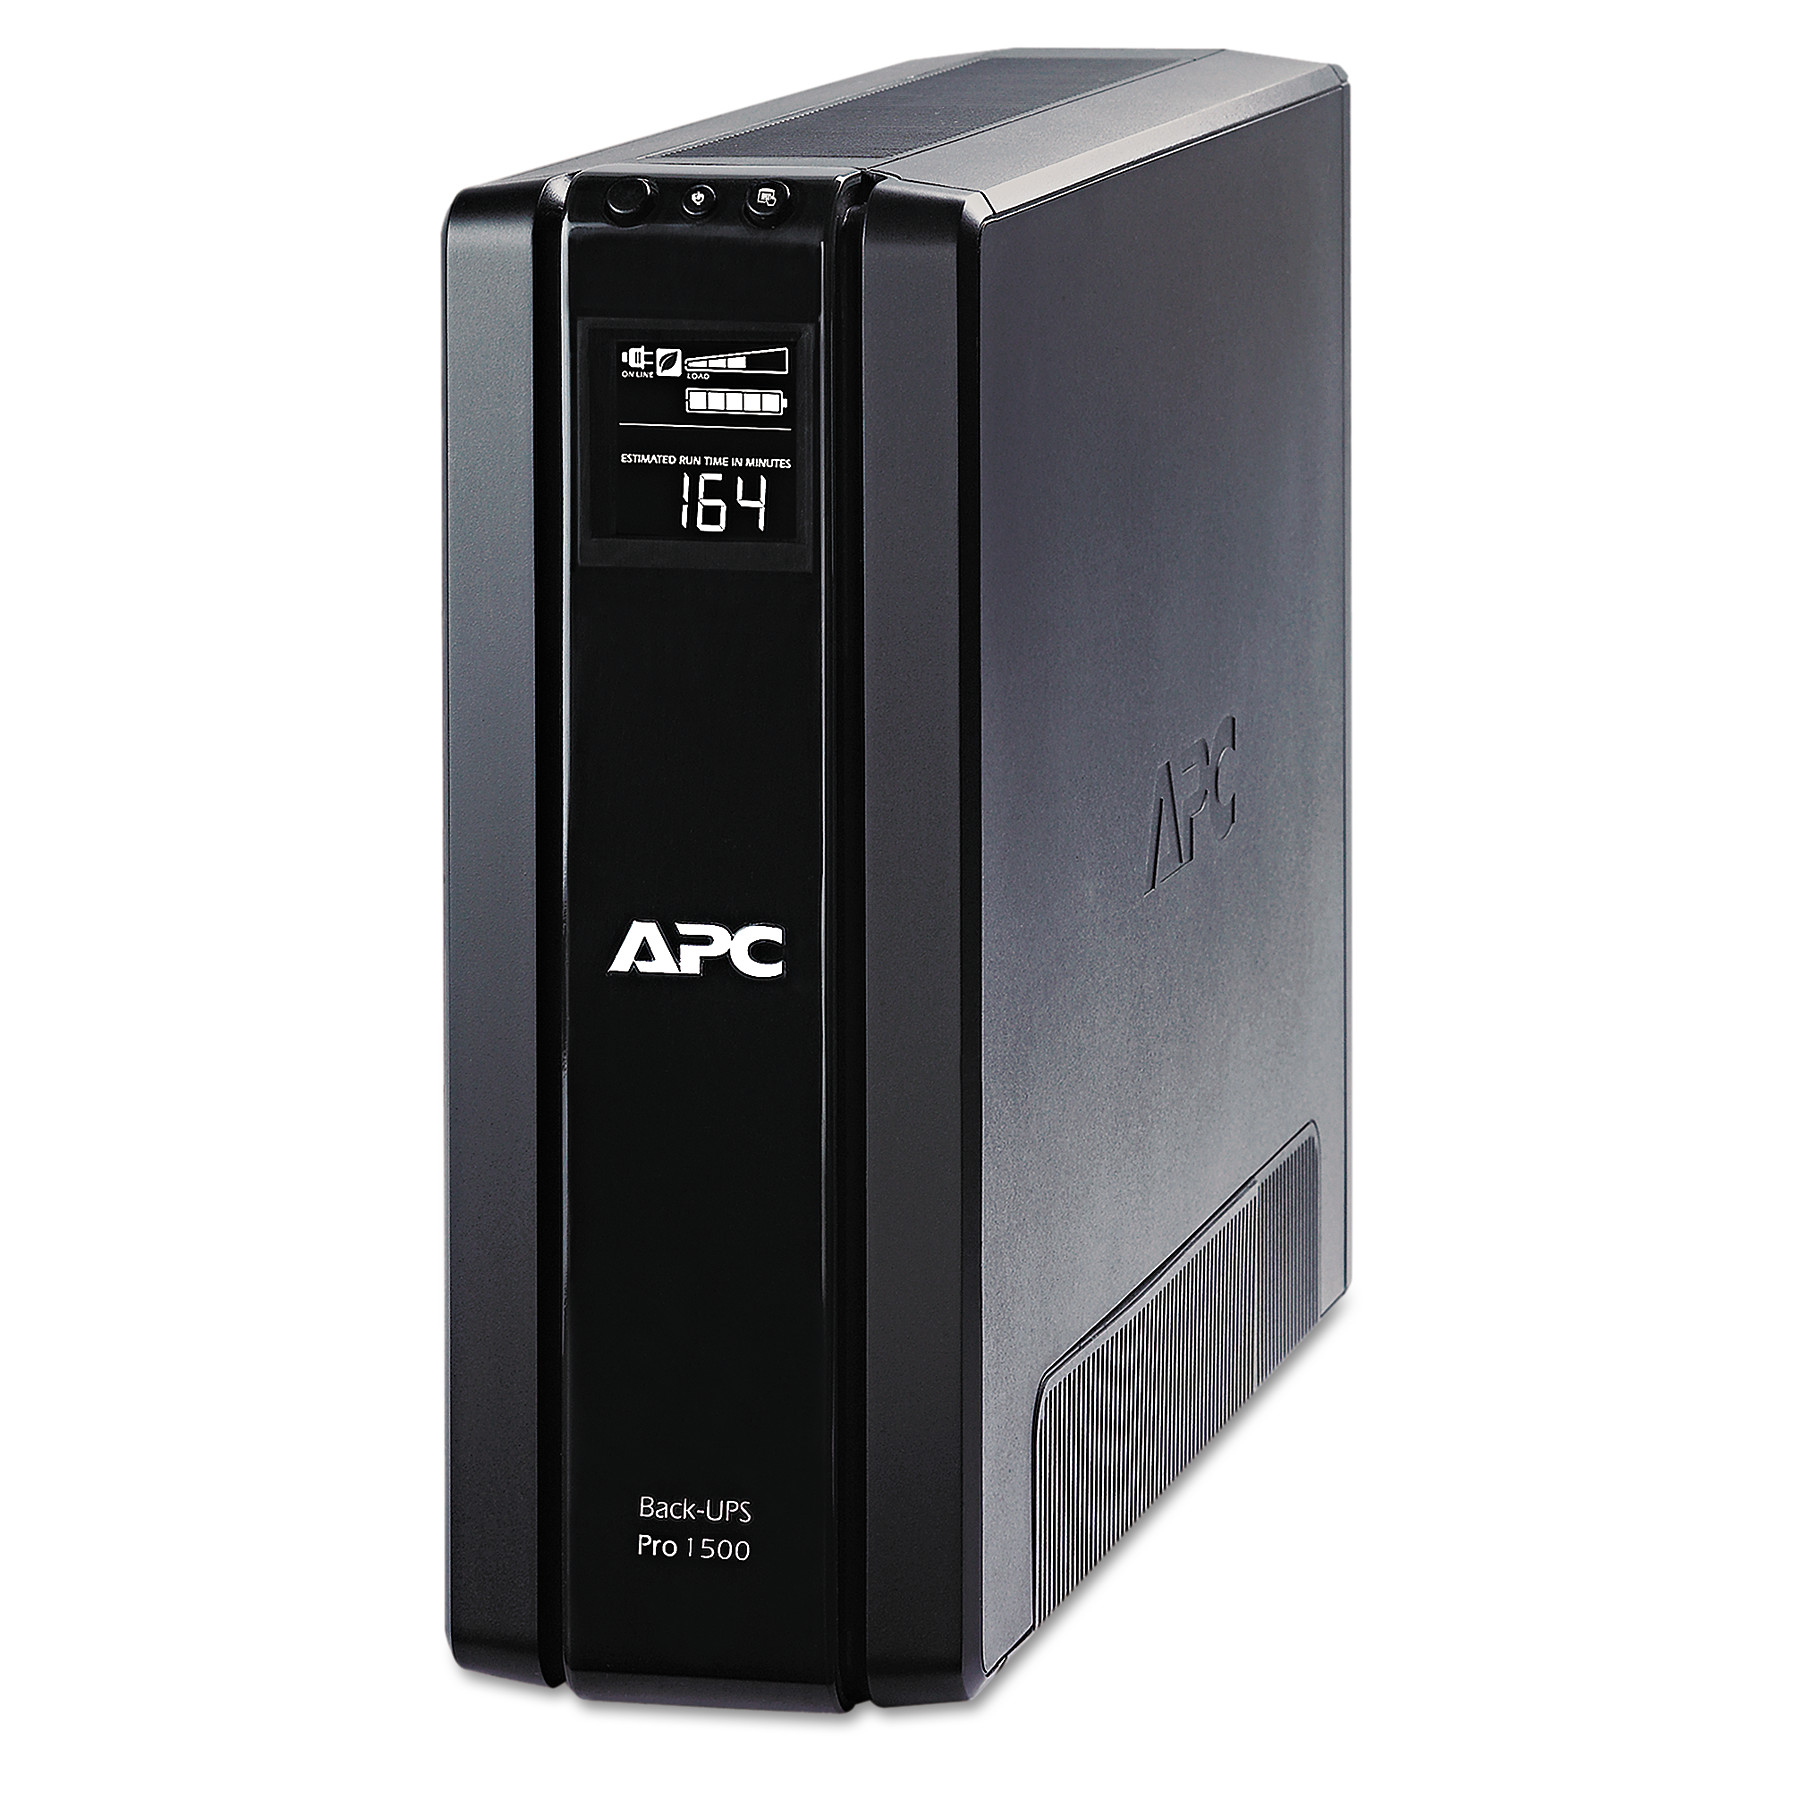 APC UPS Battery Back Up (BR1500G) Back-UPS Pro 1500VA 10-outlet Uninterruptible Power Supply with Surge Protection by APC